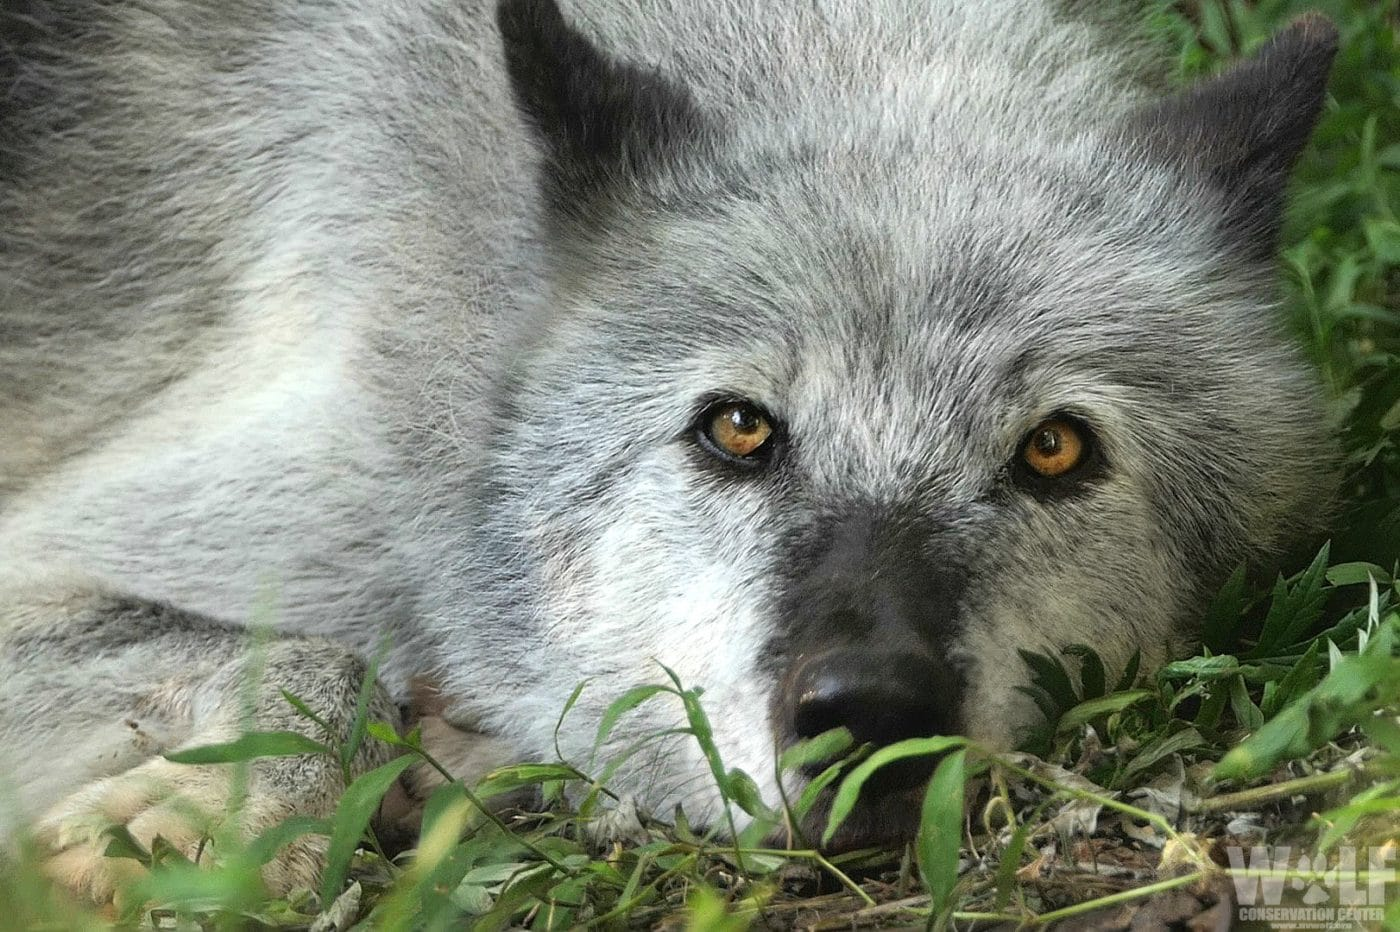 Washington State Wildlife Officials Order Killing of Entire Wolf Family to Protect Cows